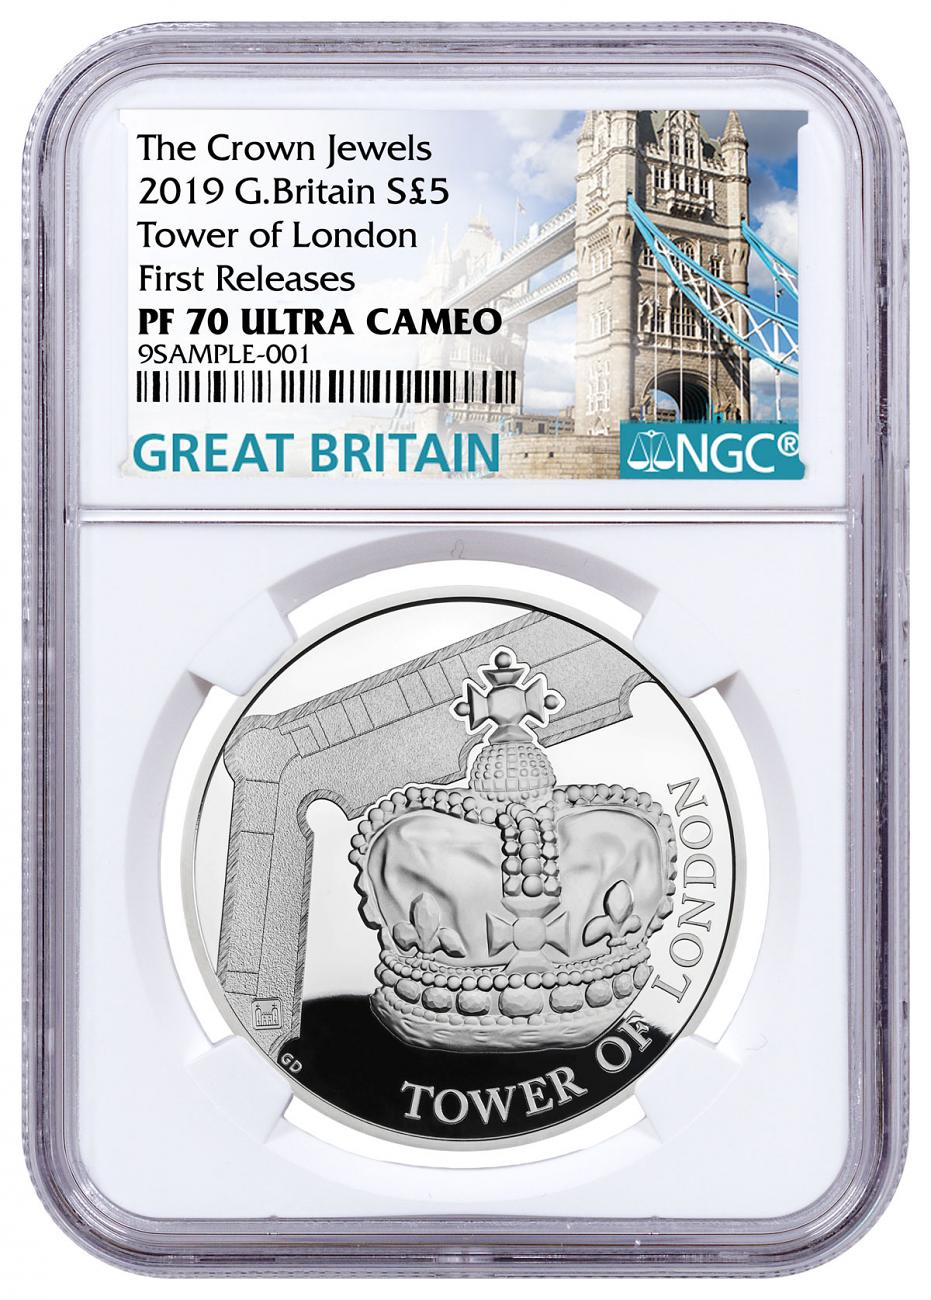 2019 Great Britain Tower of London - Crown Jewels Silver Proof £5 Coin NGC PF70 UC FR Tower Bridge Label